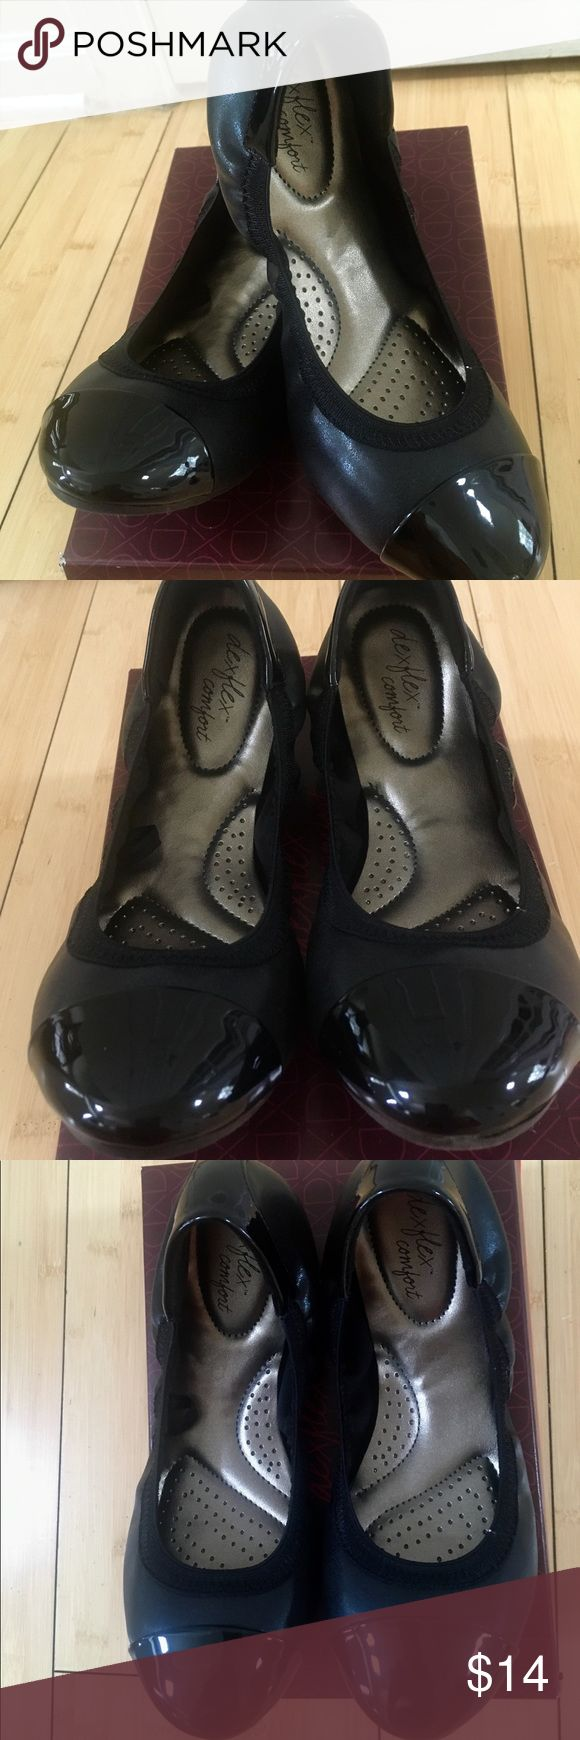 Women's Ballet Flats What women doesn't need a pair of black ballet flats in their wardrobe? These size 6.5 Claires by Deflex Comfort, are super cute and comfortable and go with just about anything. New in box. All man made materials. duflex comfort Shoes Flats & Loafers